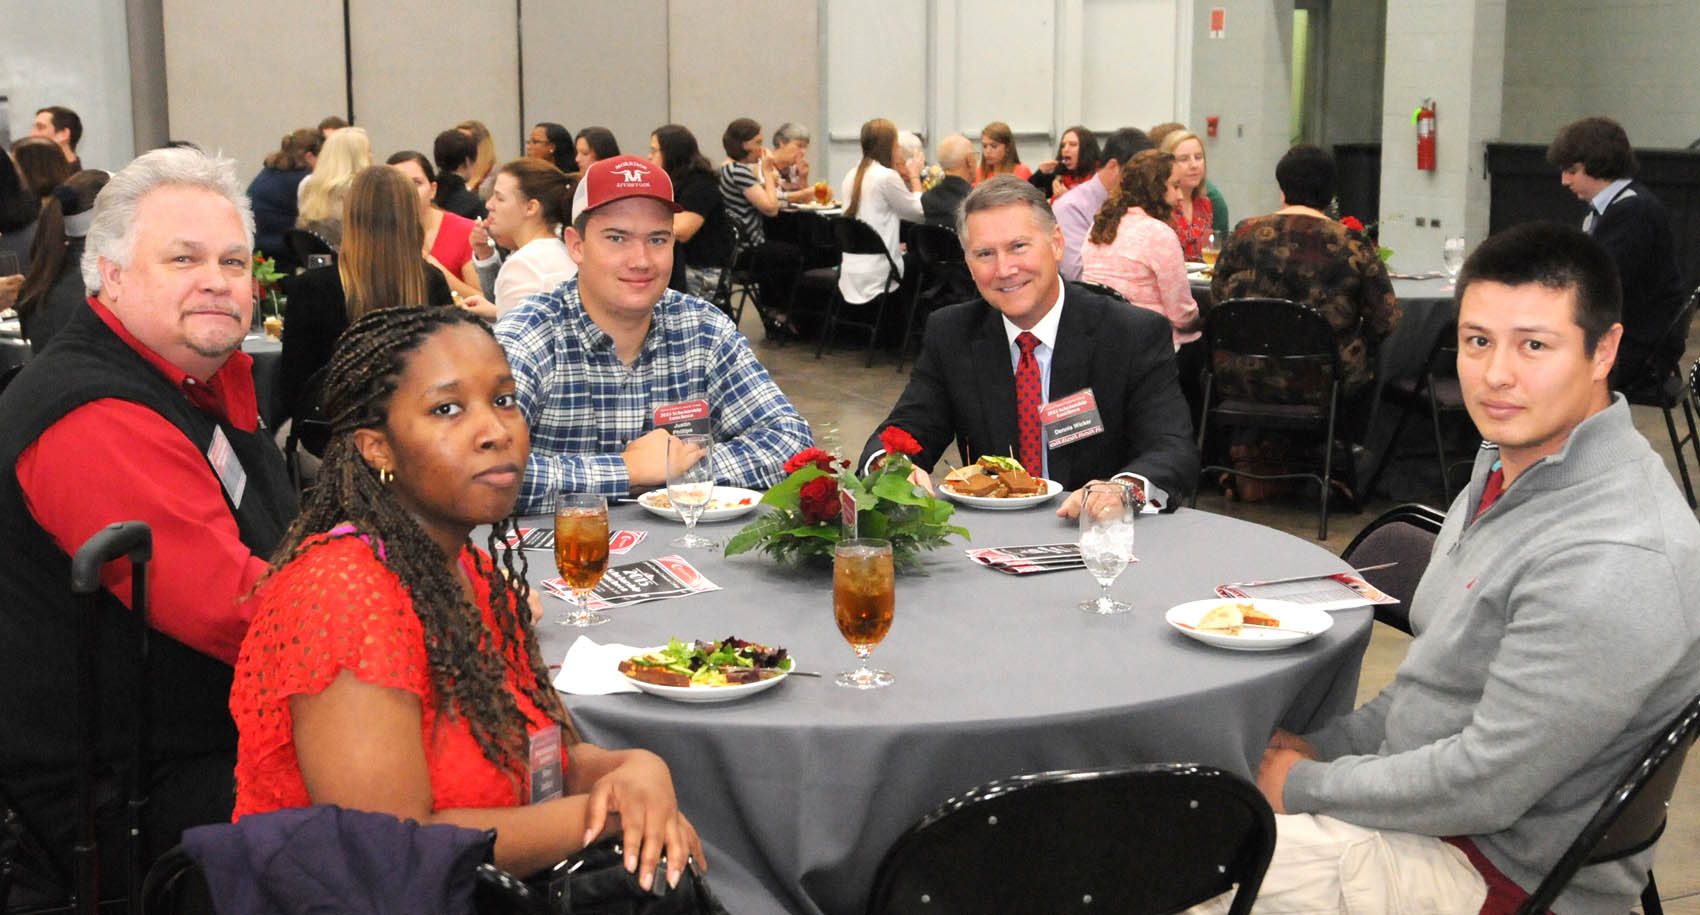 Click to enlarge,  Former North Carolina Lt. Gov. Dennis Wicker (second from right) visits with students and faculty during the CCCC Foundation Scholarship Luncheon. Others pictured are (left to right) Shana Jackson, recipient of the Exchange Club of Sanford Scholarship; CCCC Industrial Systems Technology Chair Allen Howington; Justin Phillips, recipient of the J. Shelton and Clarice B. Wicker Scholarship; Mr. Wicker; and Richard Glitz, recipient of the J. Shelton and Clarice B. Wicker Scholarship.